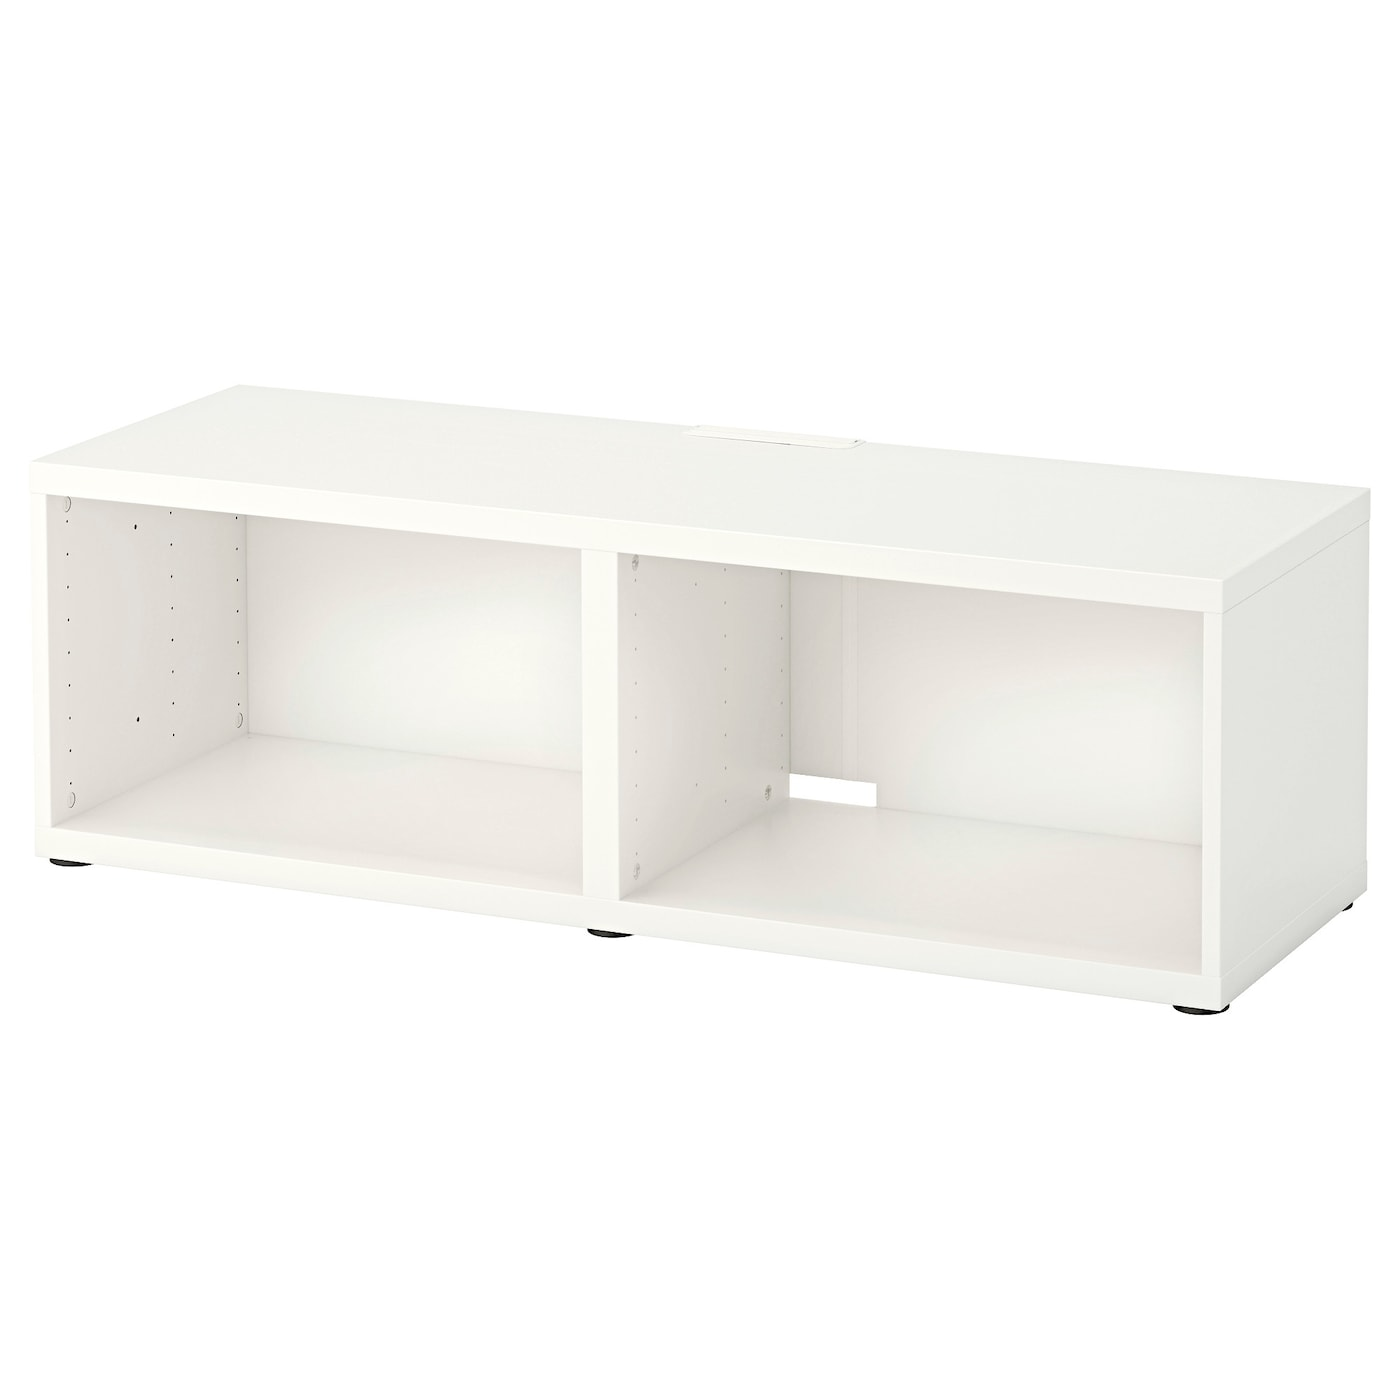 Best Banc Tv Blanc 120x40x38 Cm Ikea # Meuble Blanc Tv Ikea